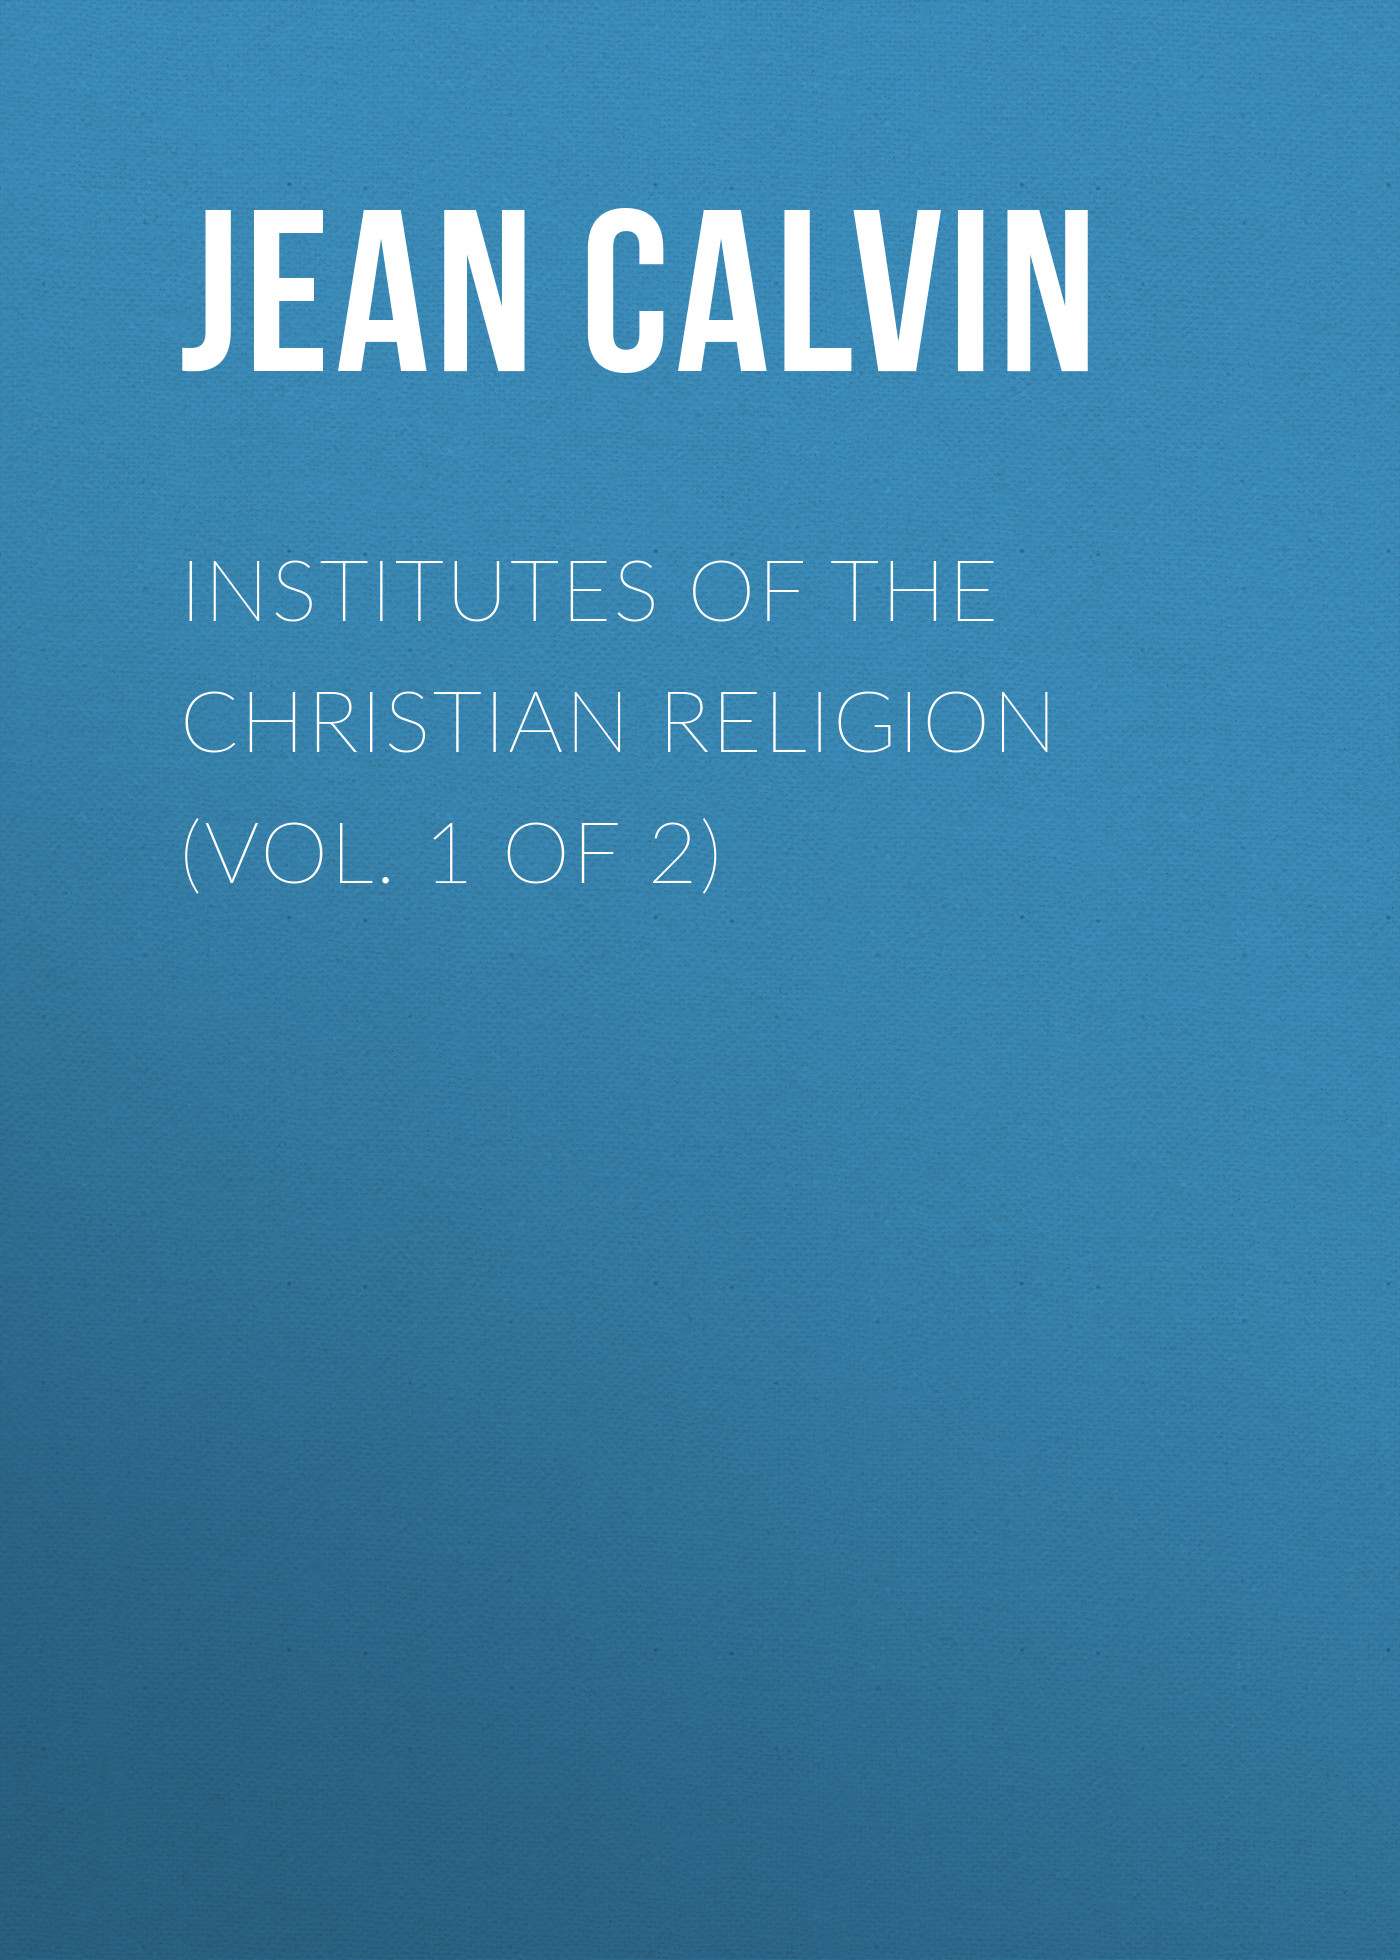 Jean Calvin Institutes of the Christian Religion (Vol. 1 of 2) joseph priestley institutes of natural and revealed religion vol 2